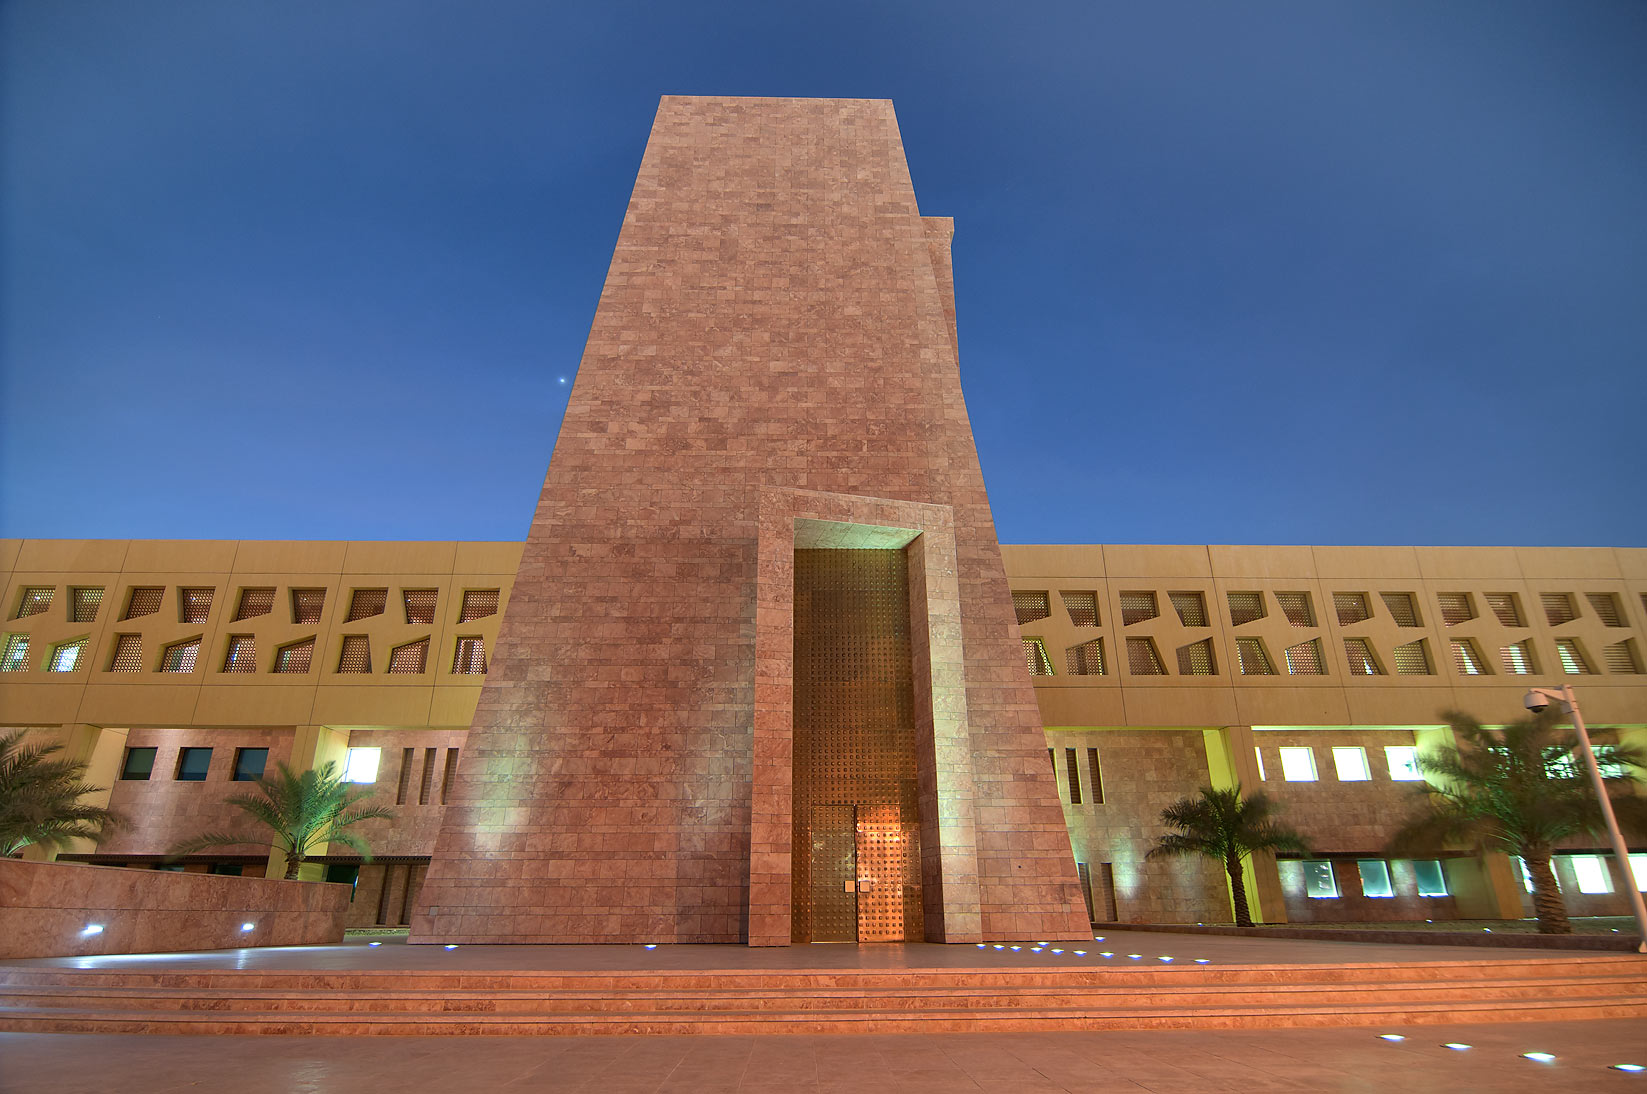 Main entrance of TAMUQ (Texas A&M University at Qatar) in Education City. Doha, Qatar